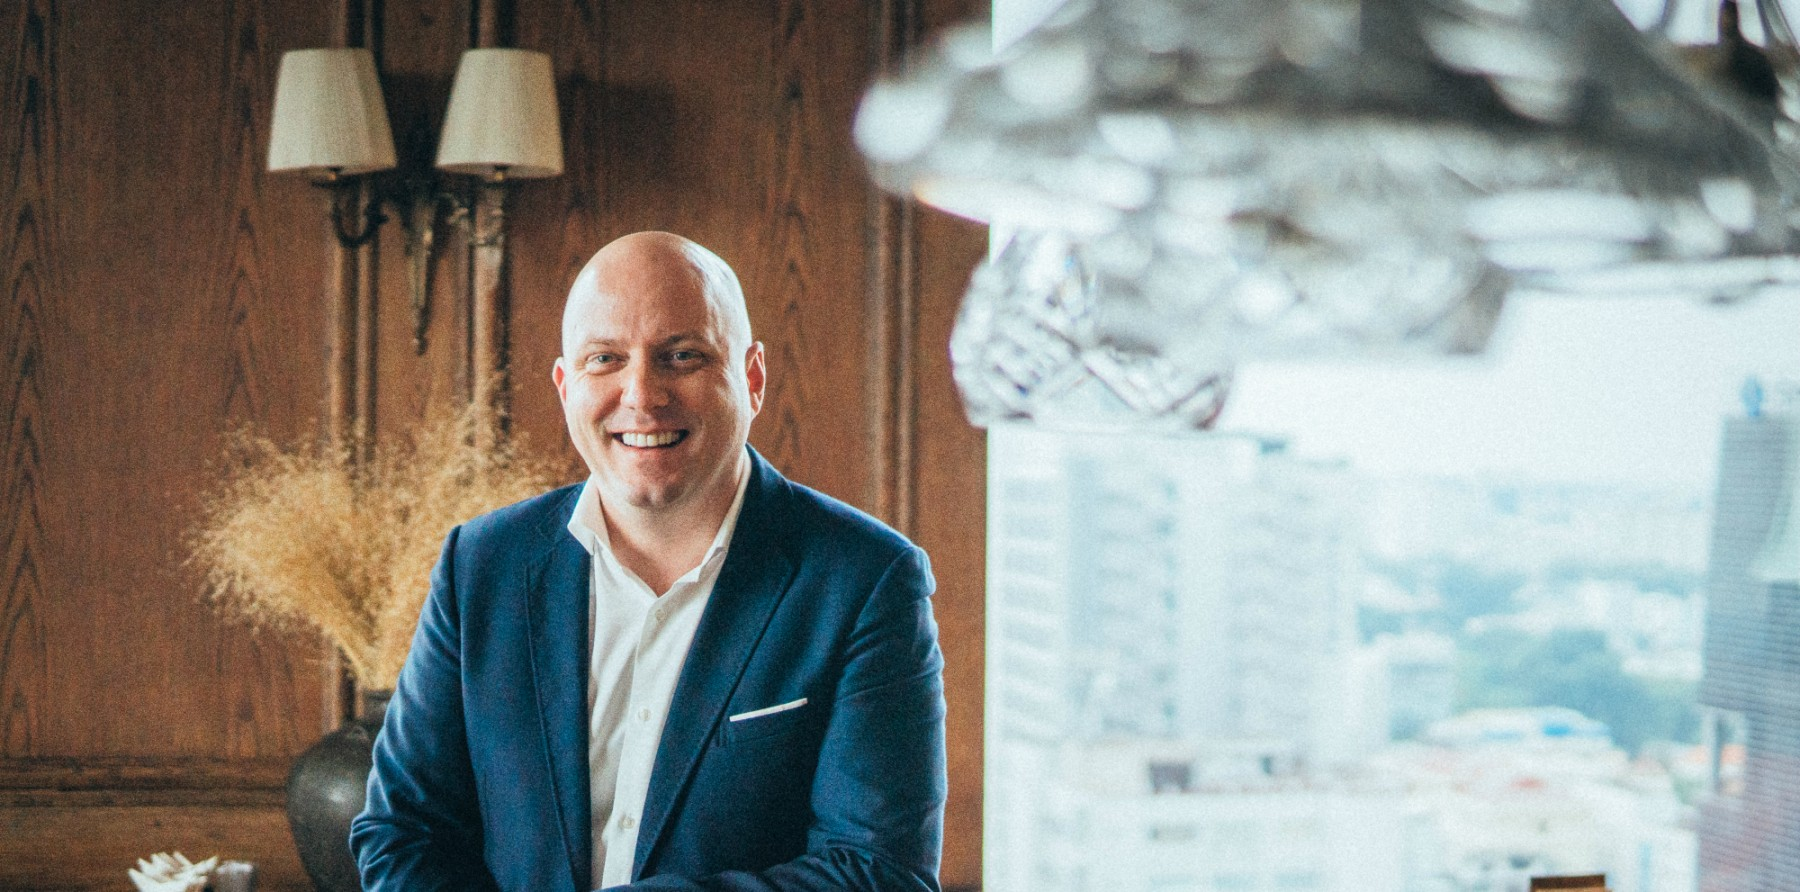 Carl Gagnon: Hôtel des Arts Saigon's General Manager Talks Tourism's Future - Hôtel des Arts Saigon, MGallery Collection